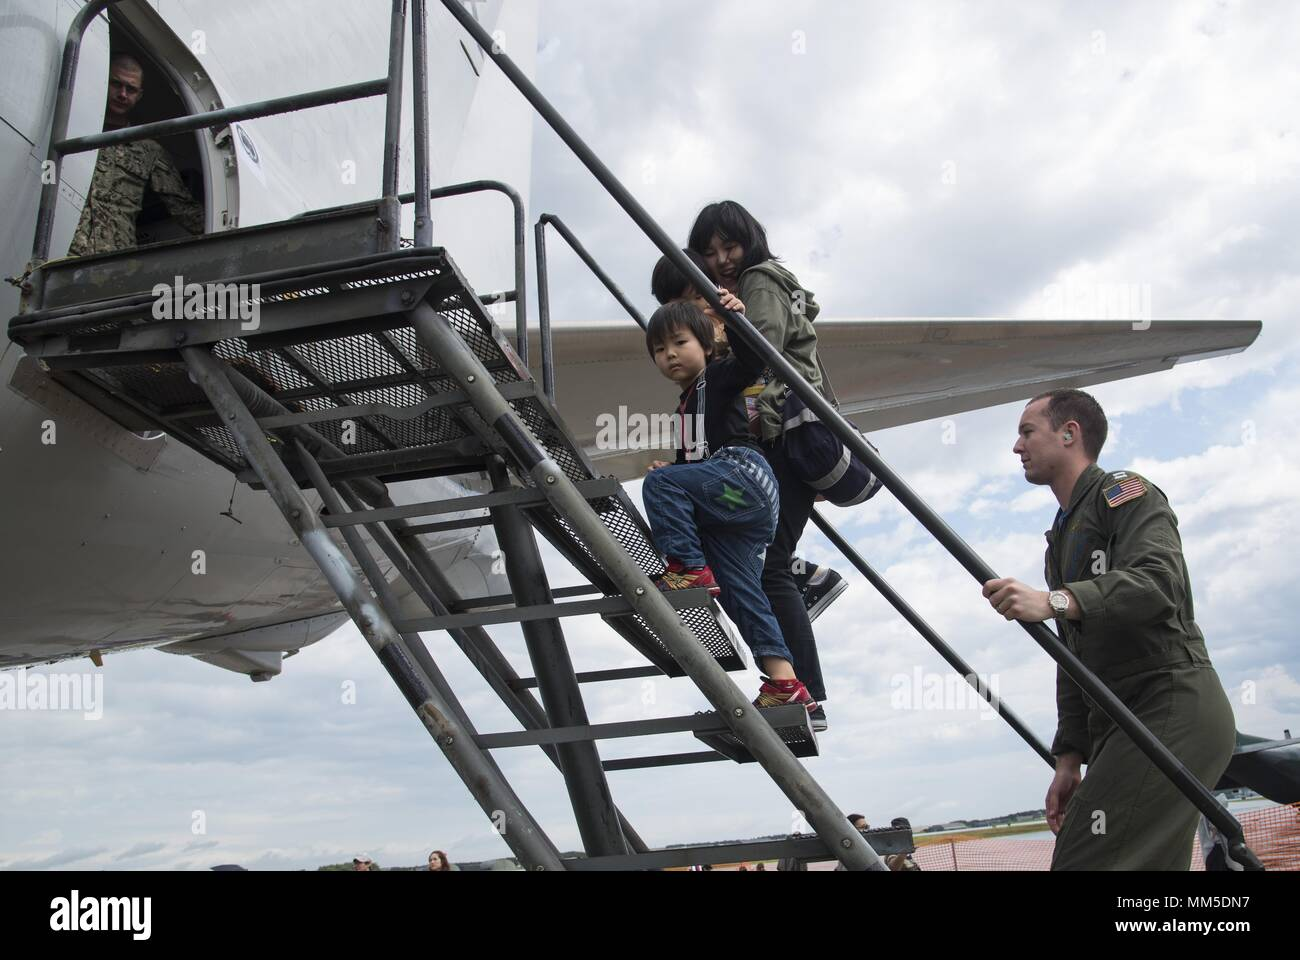 The Tusgumori family steps into an aircraft during the Pacific